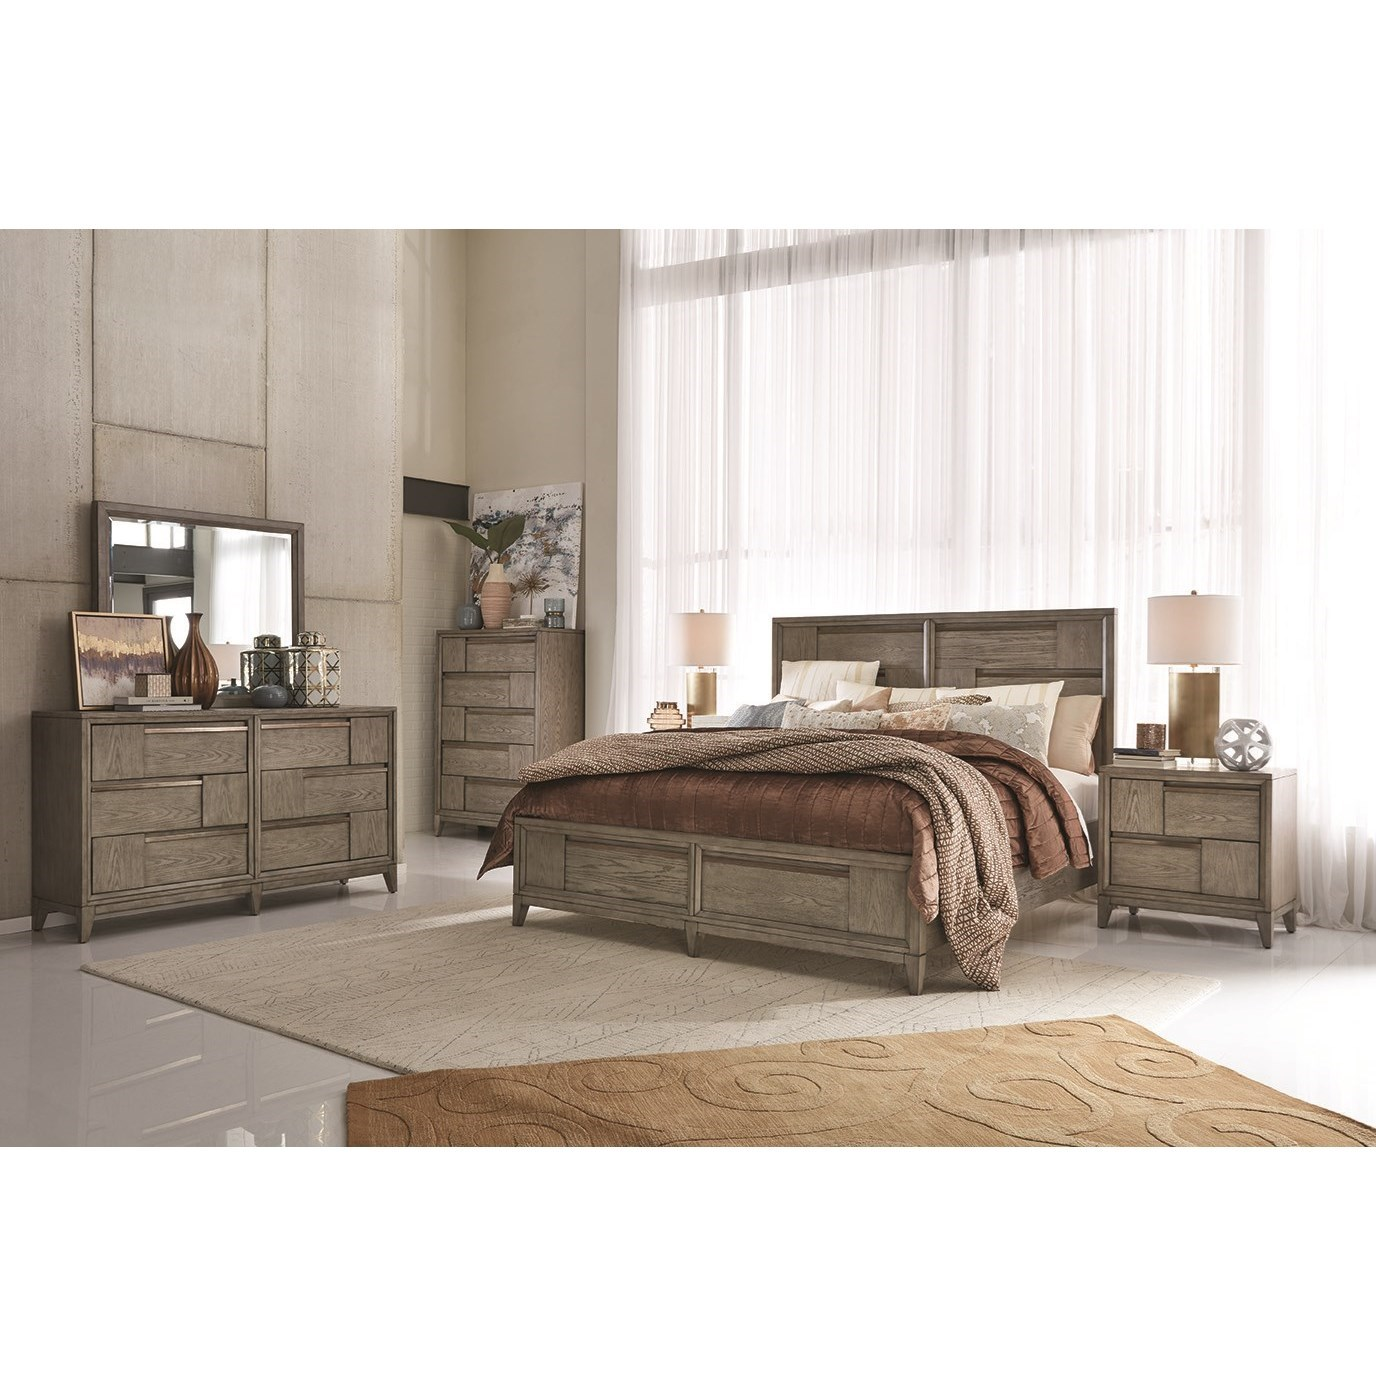 Atelier Queen Storage Bedroom Group by Magnussen Home at Value City Furniture